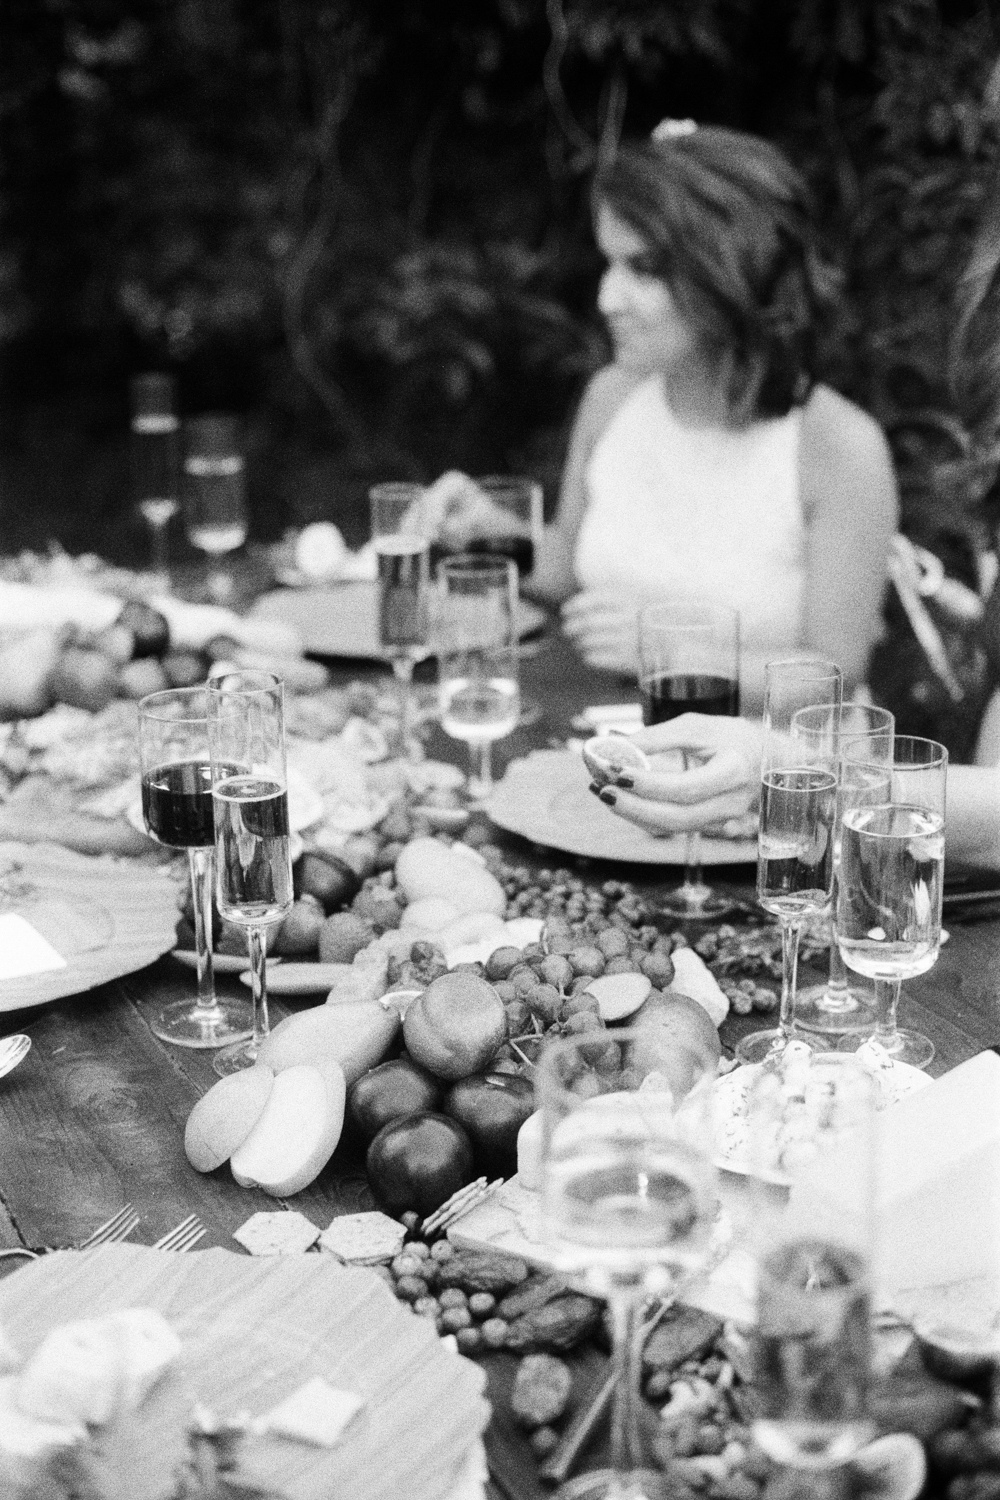 Rehearsal-dinner-photographer-film-photography-christine-gosch-texas-destination-pentax645n-medium-format-fuji400h-ilford-delta-3200-16.jpg